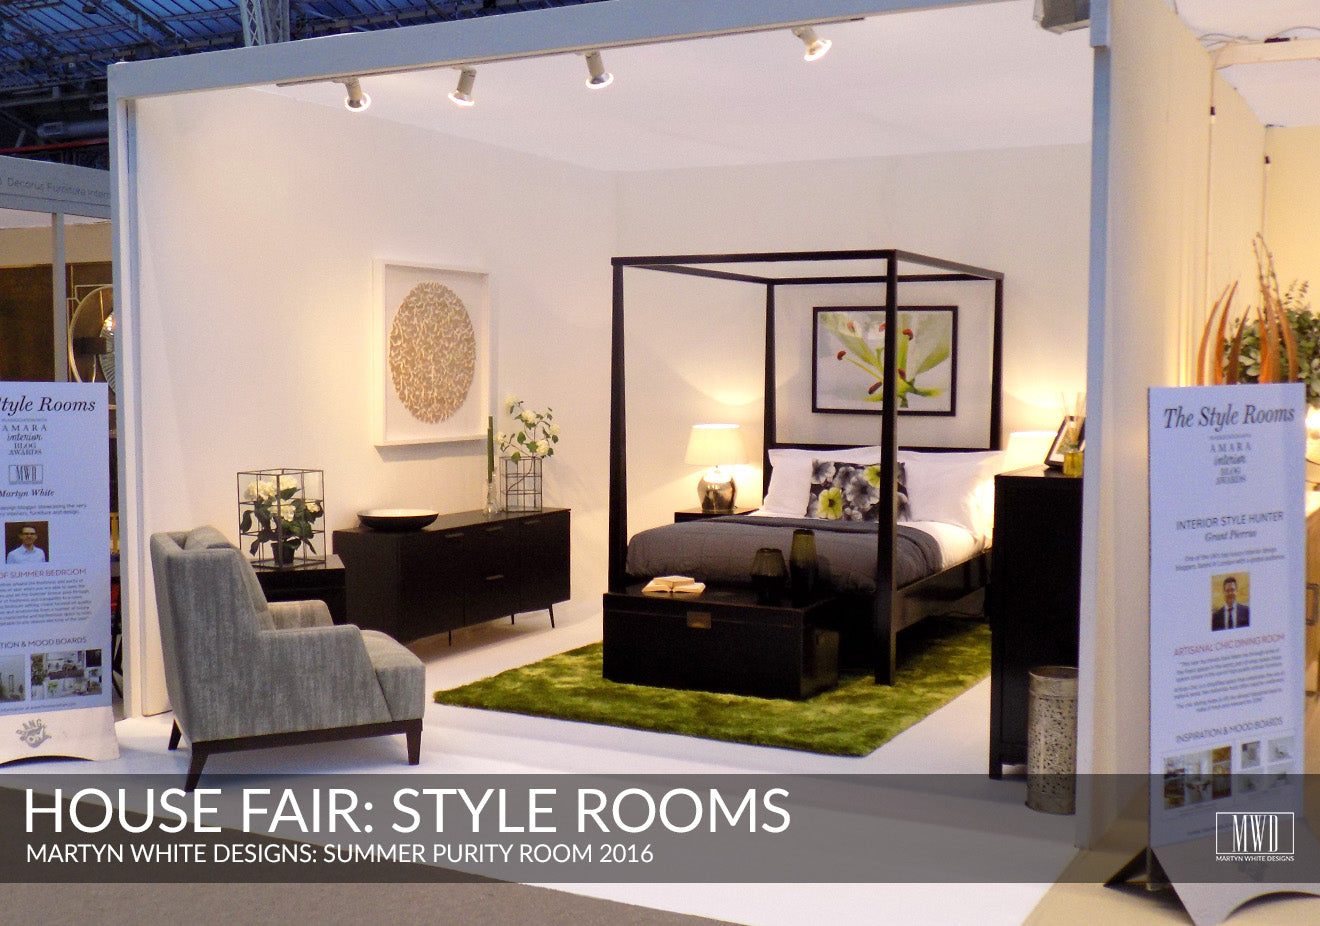 Style rooms on display at the House Fair 2016